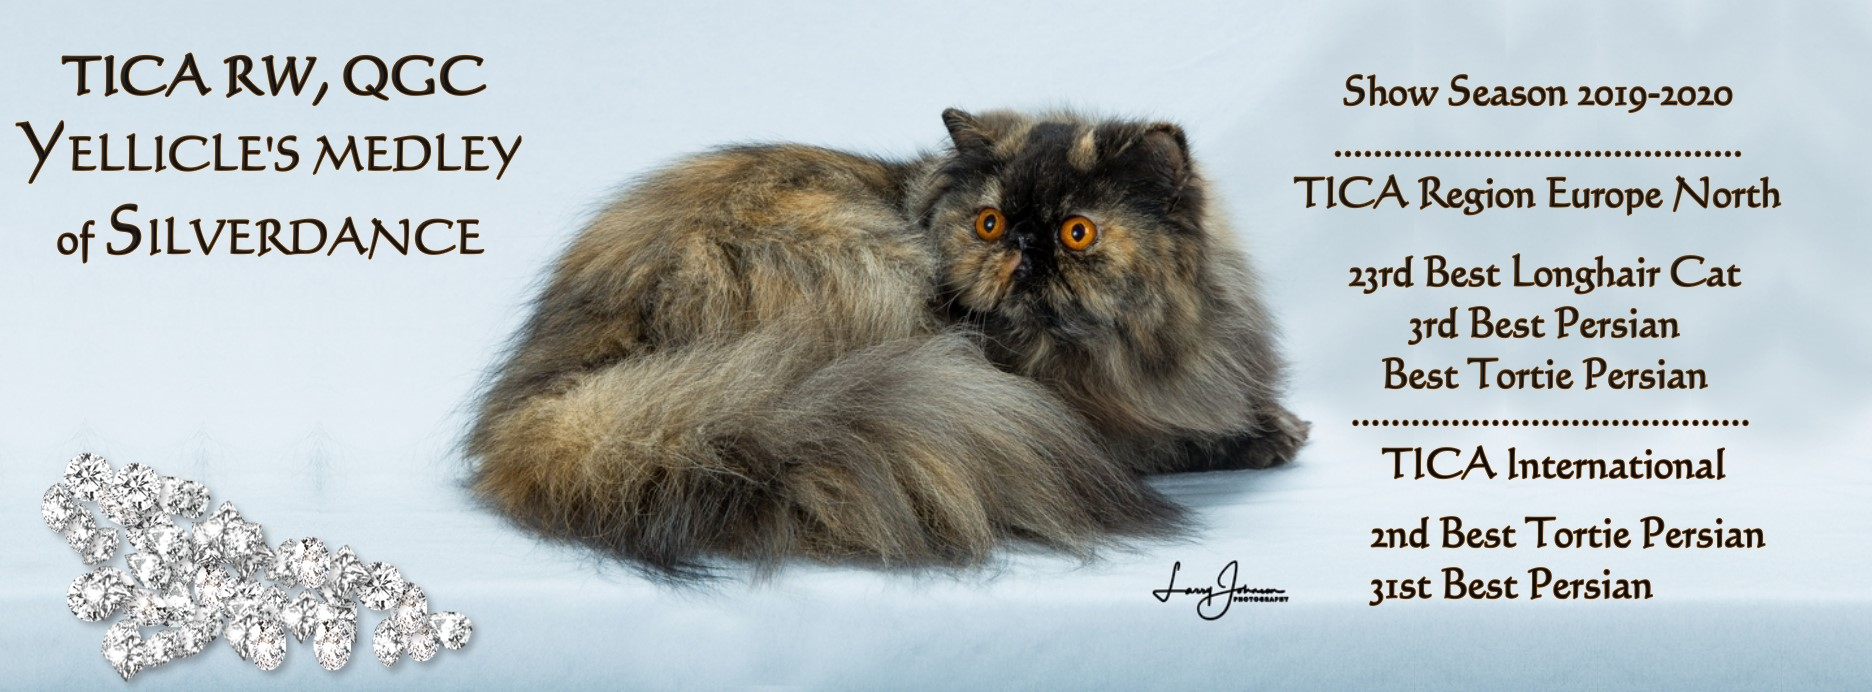 Silverdance Persians - CFA & TICA cattery for smoke persians & solid persians